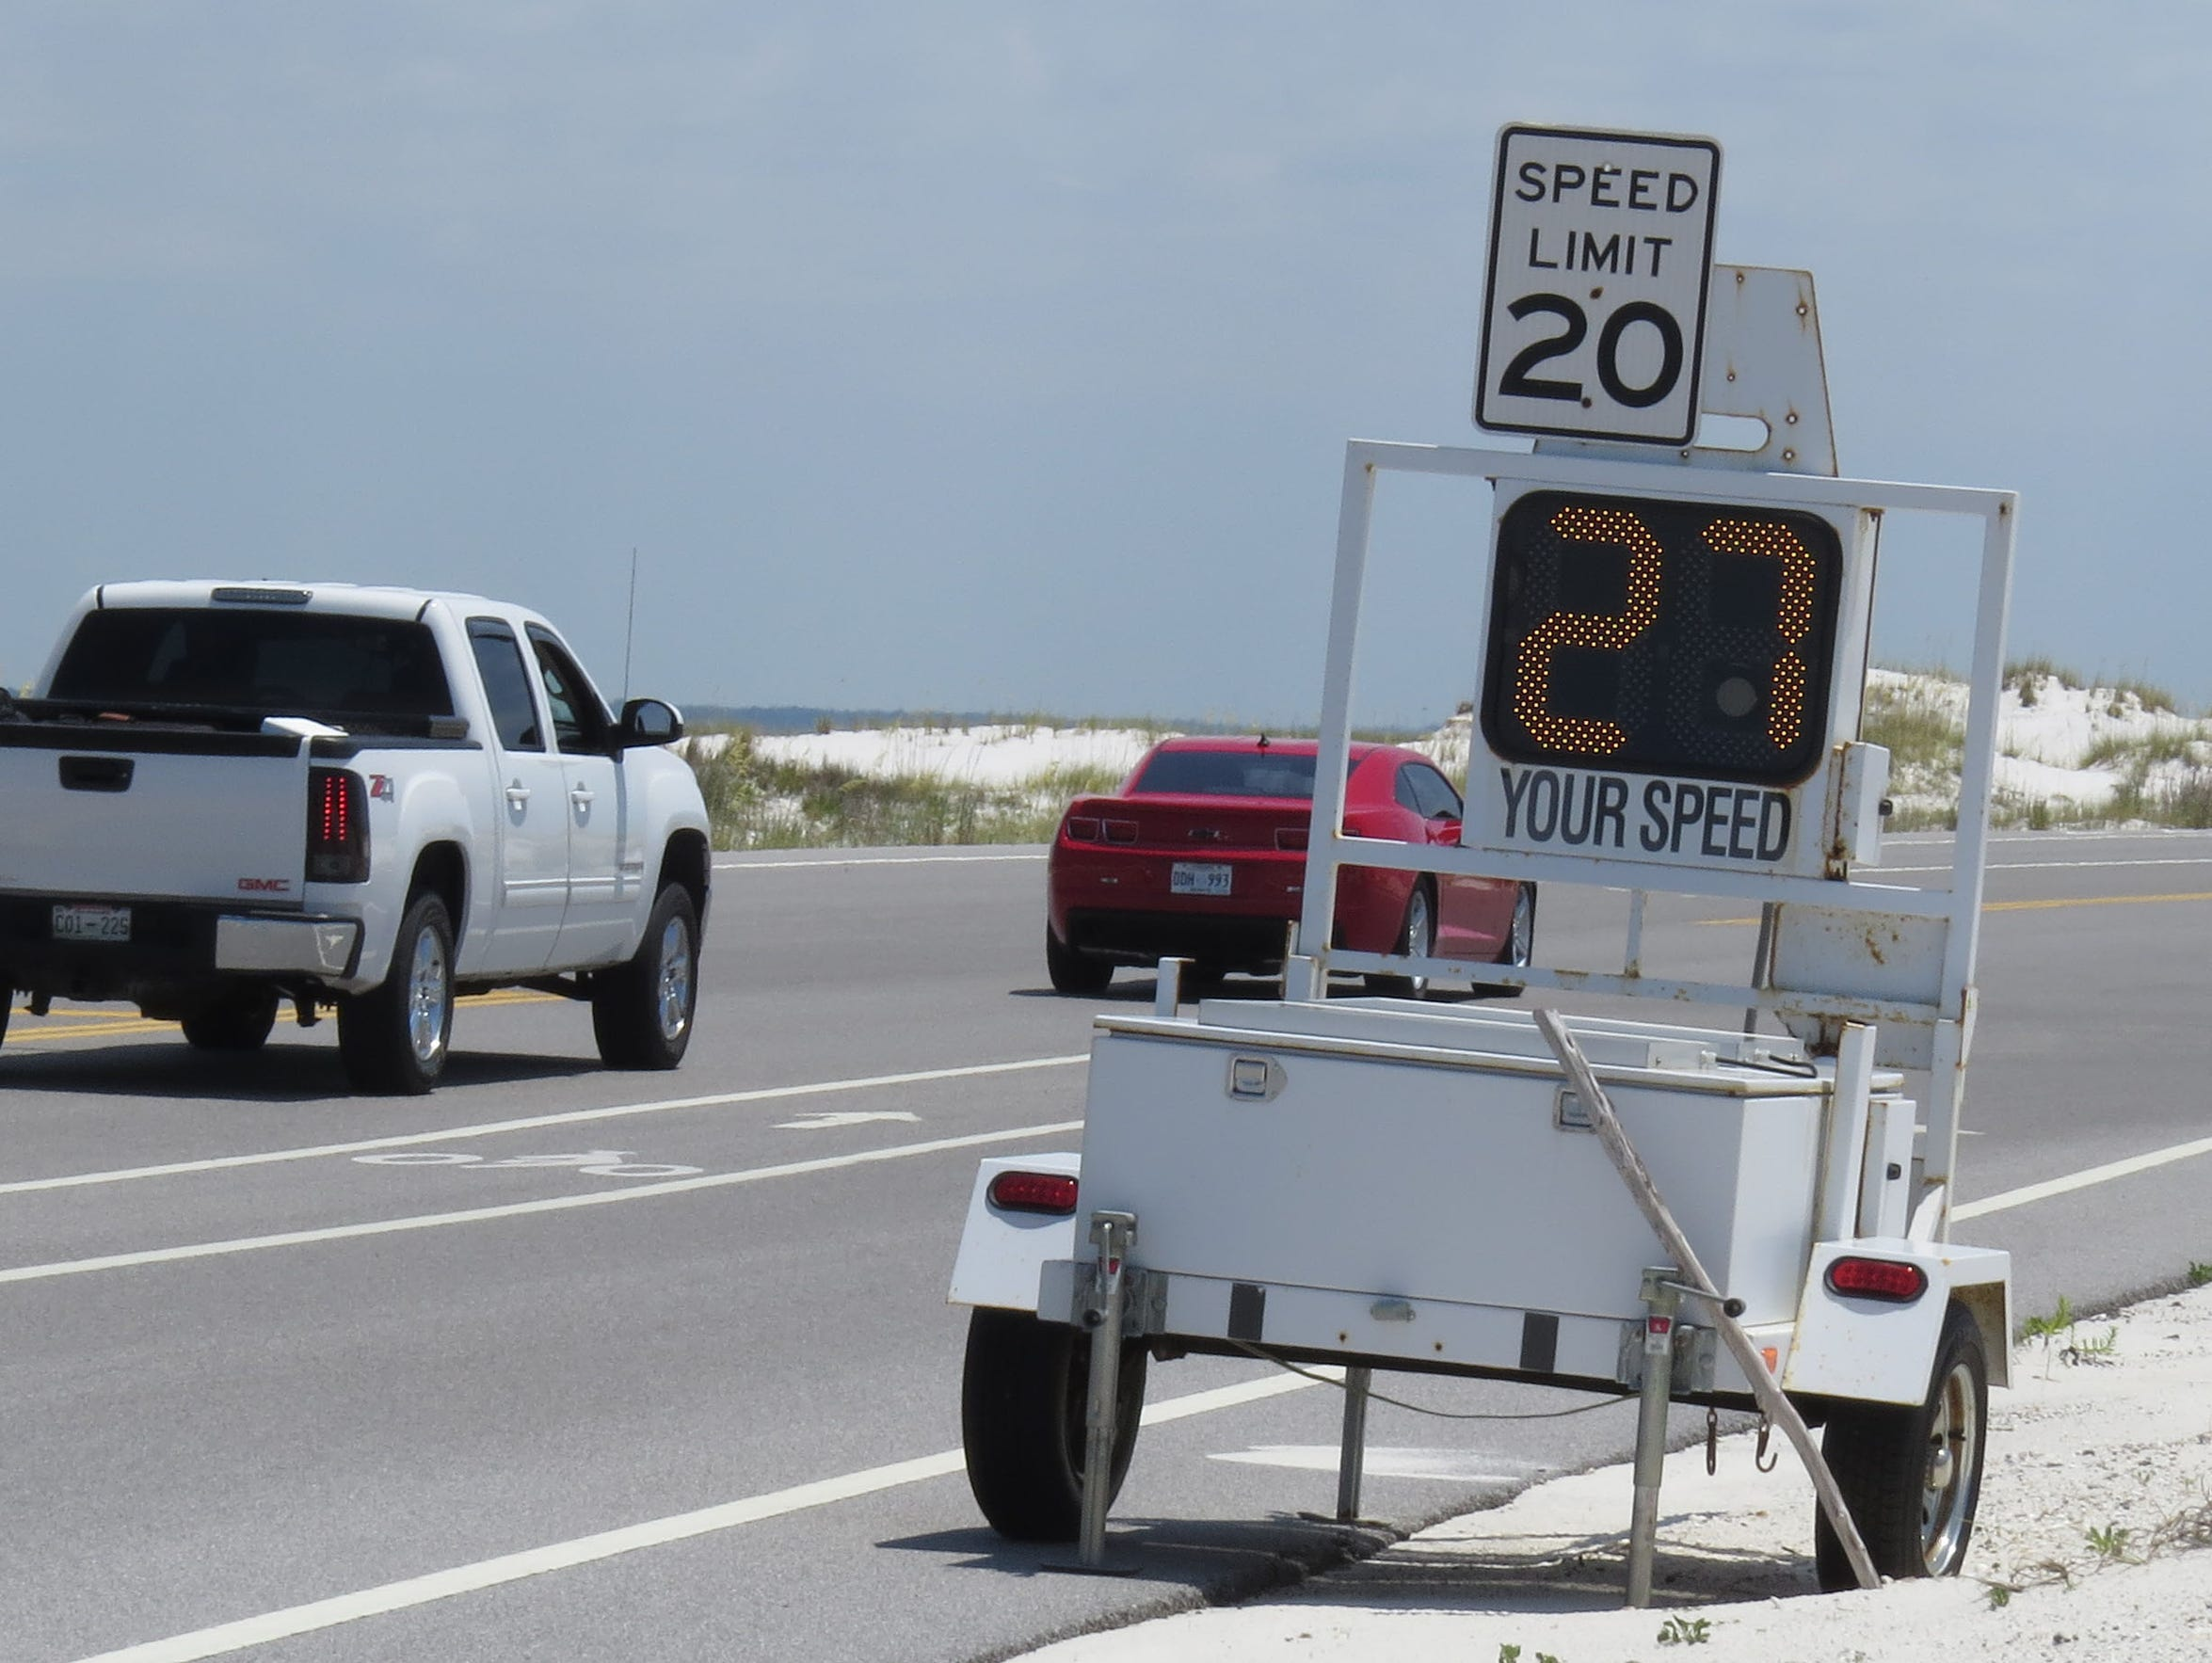 Speed advisory signs are put up around the shorebird